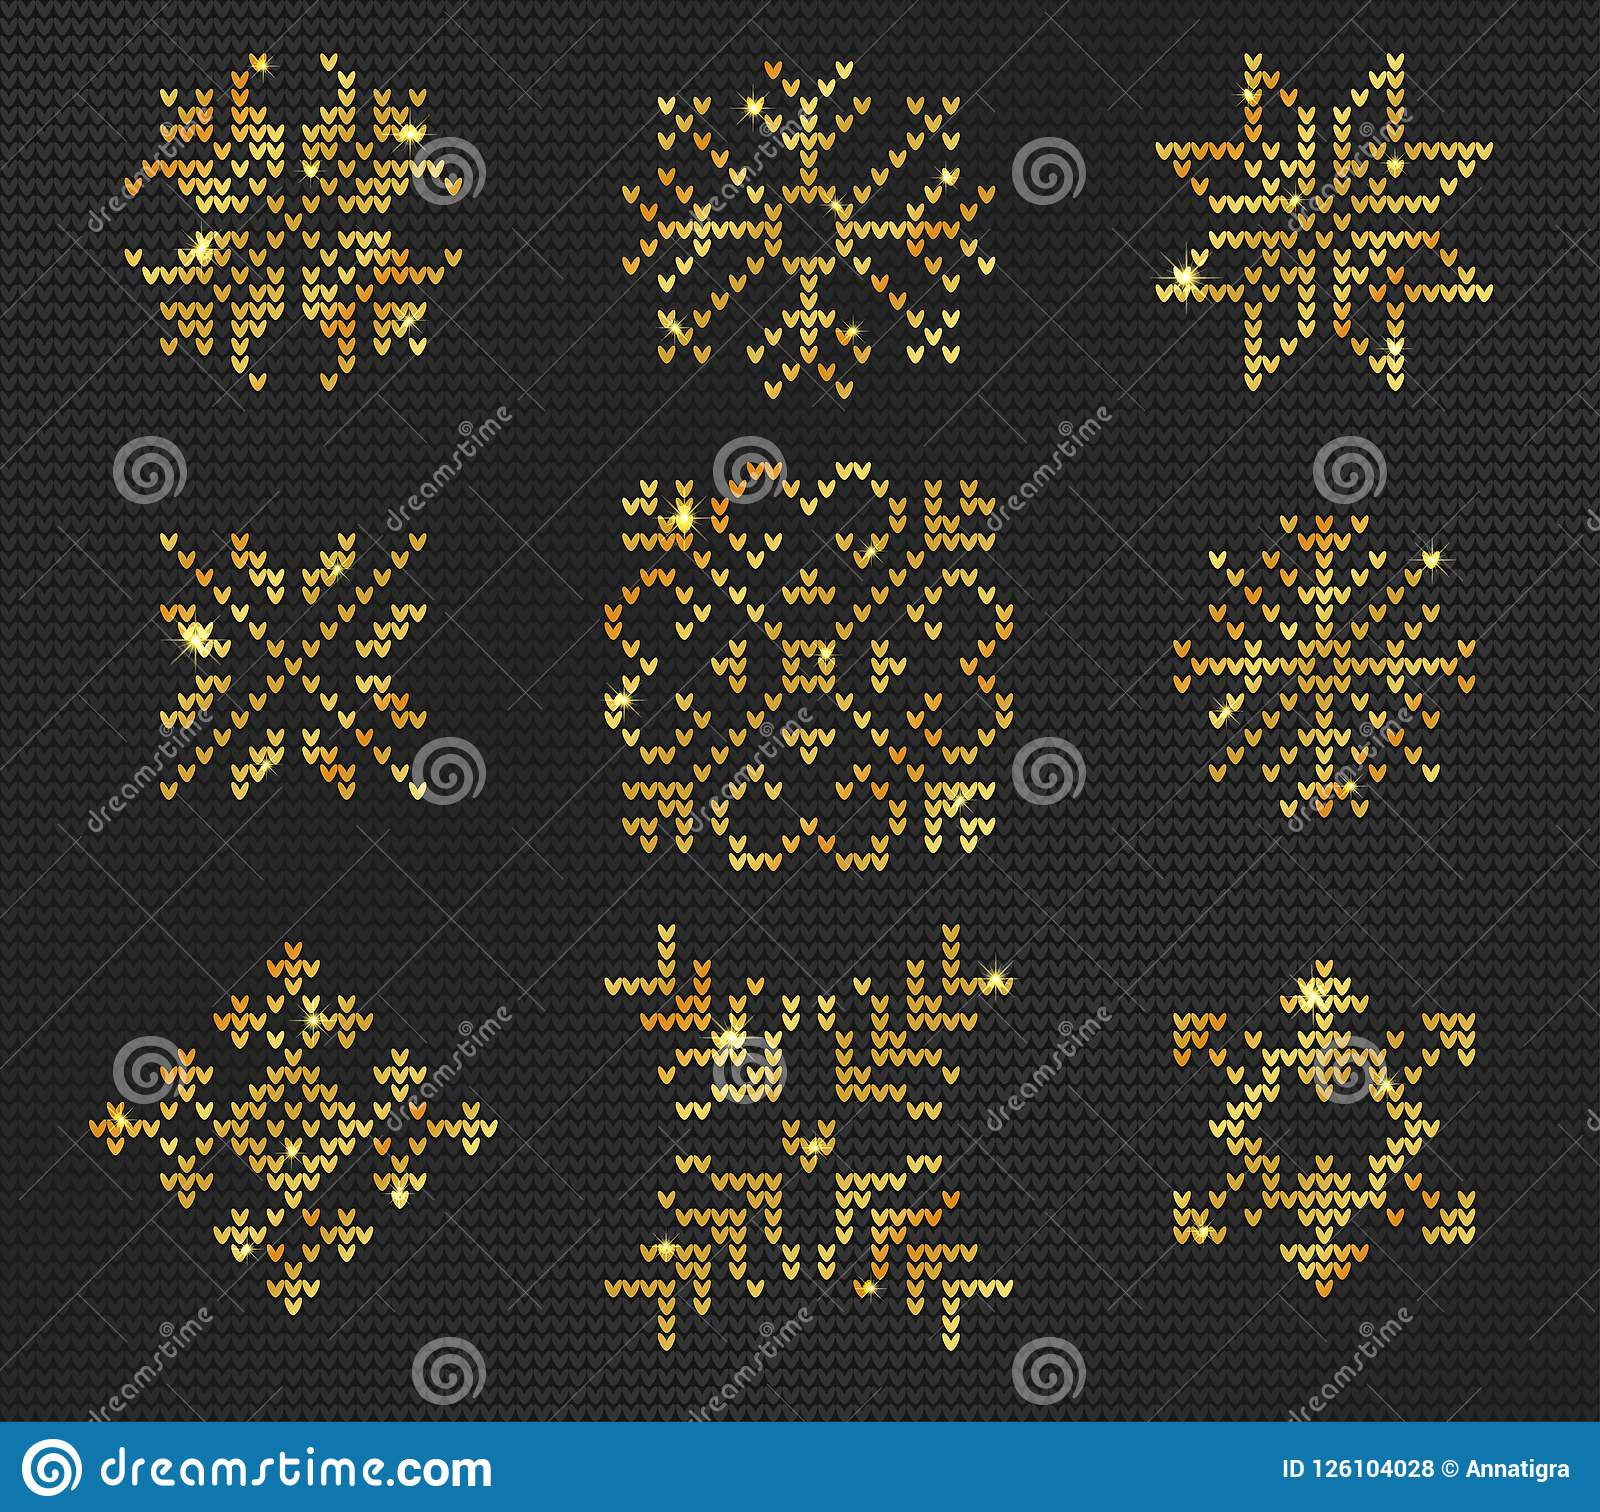 c4f6516d9bc3 Ugly sweater Pattern stock vector. Illustration of retro - 126104028